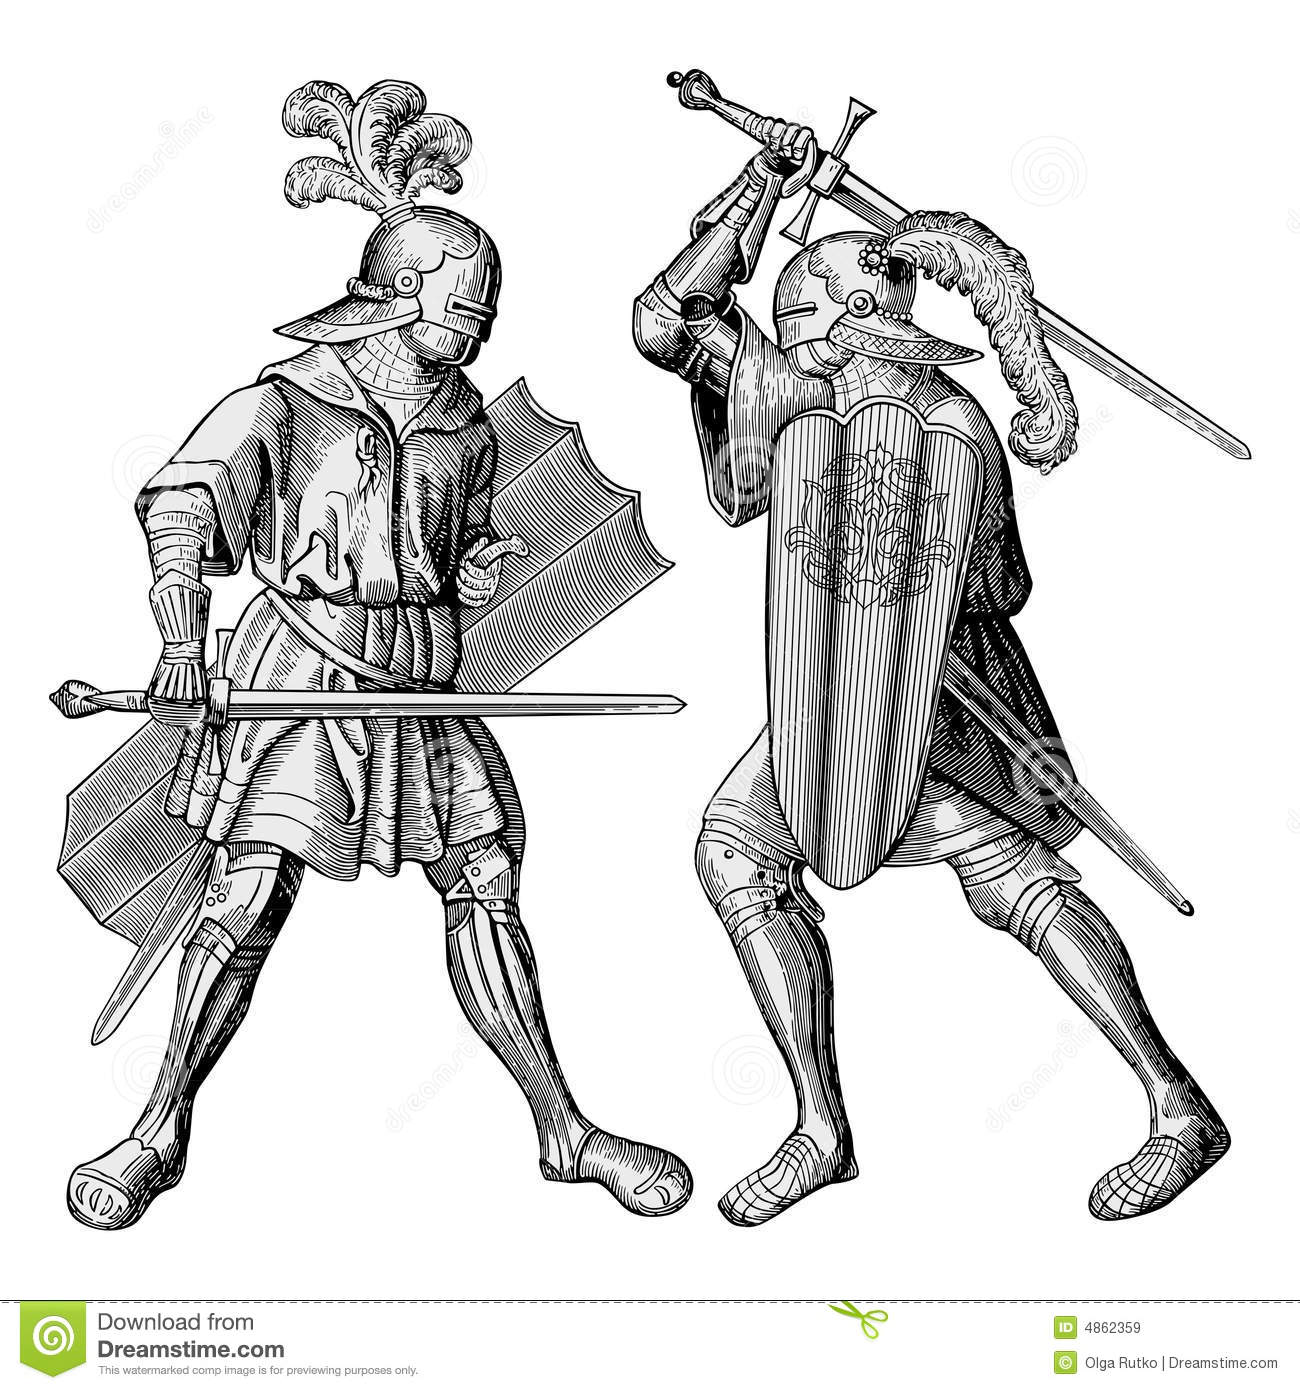 how to draw knights fighting knight fighting dragon drawing at getdrawings free download fighting how to draw knights